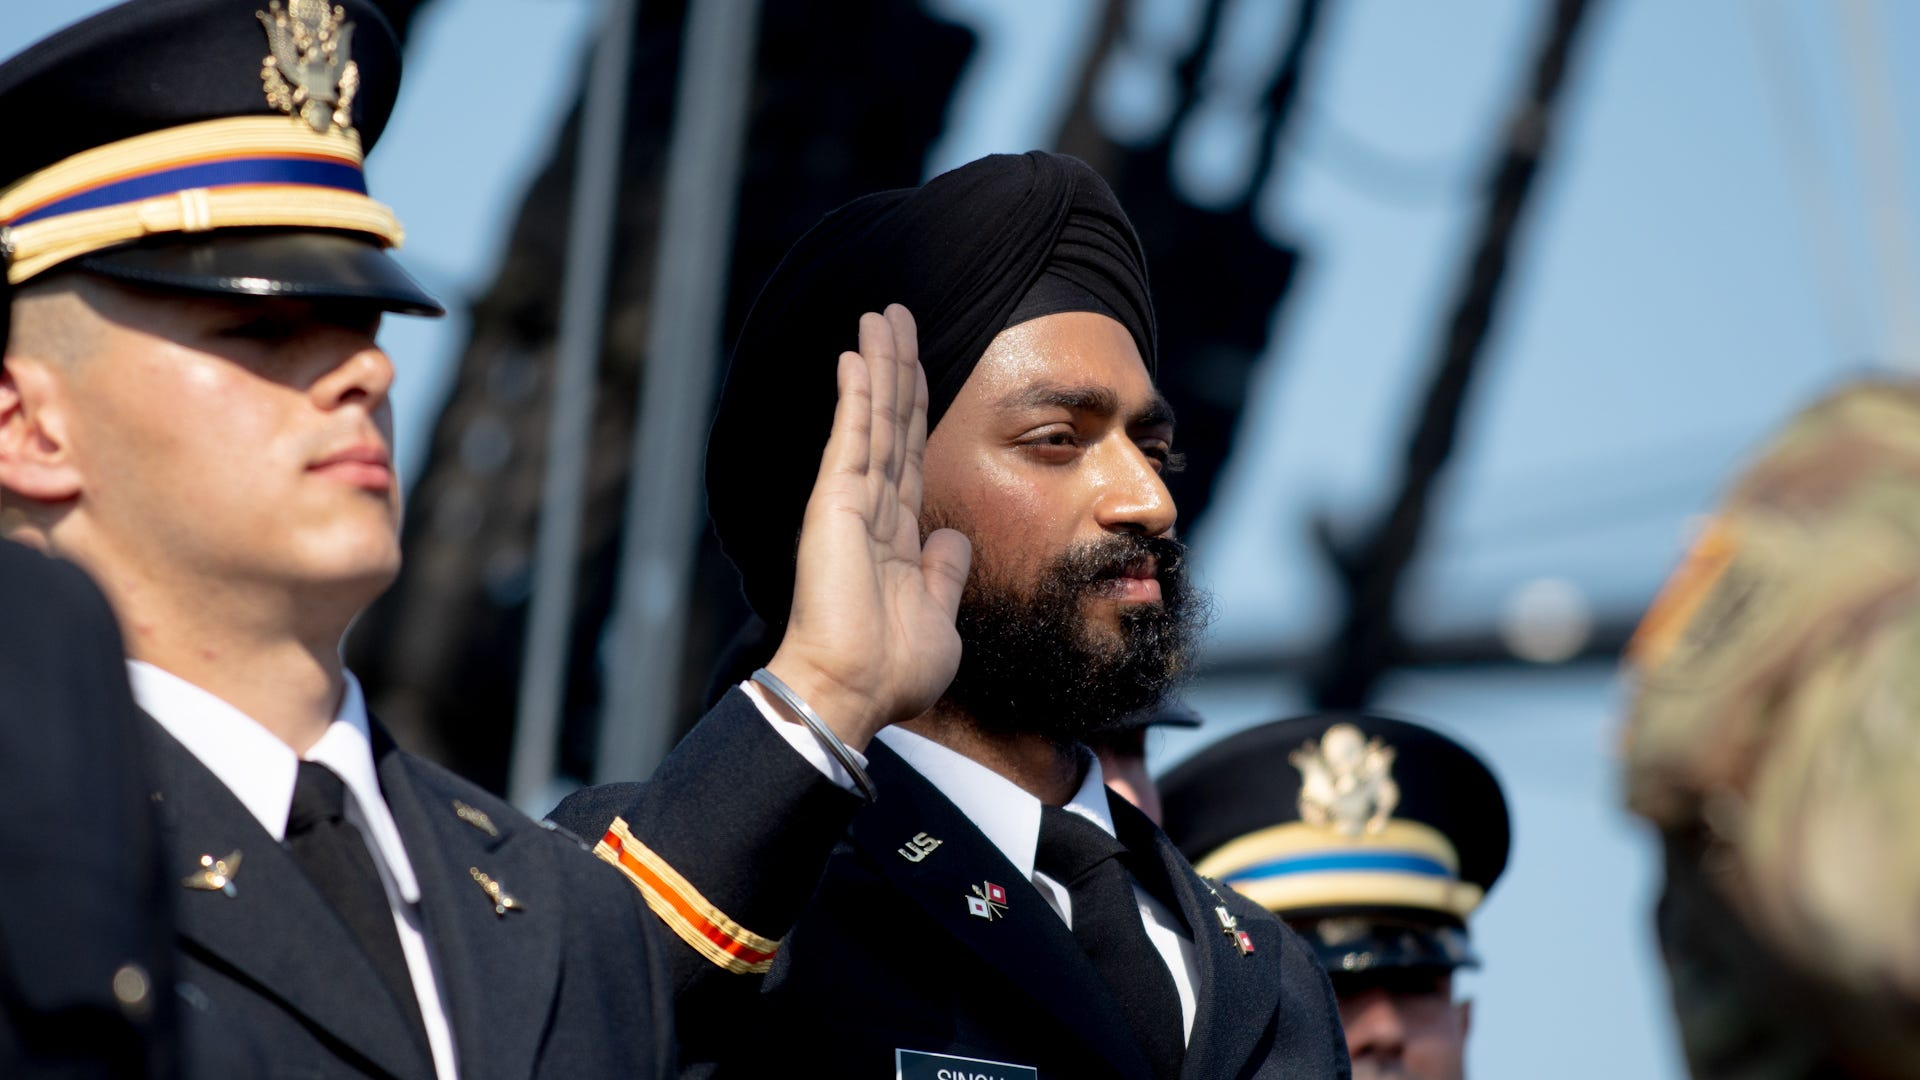 Sikh soldier fights to honor religion and country